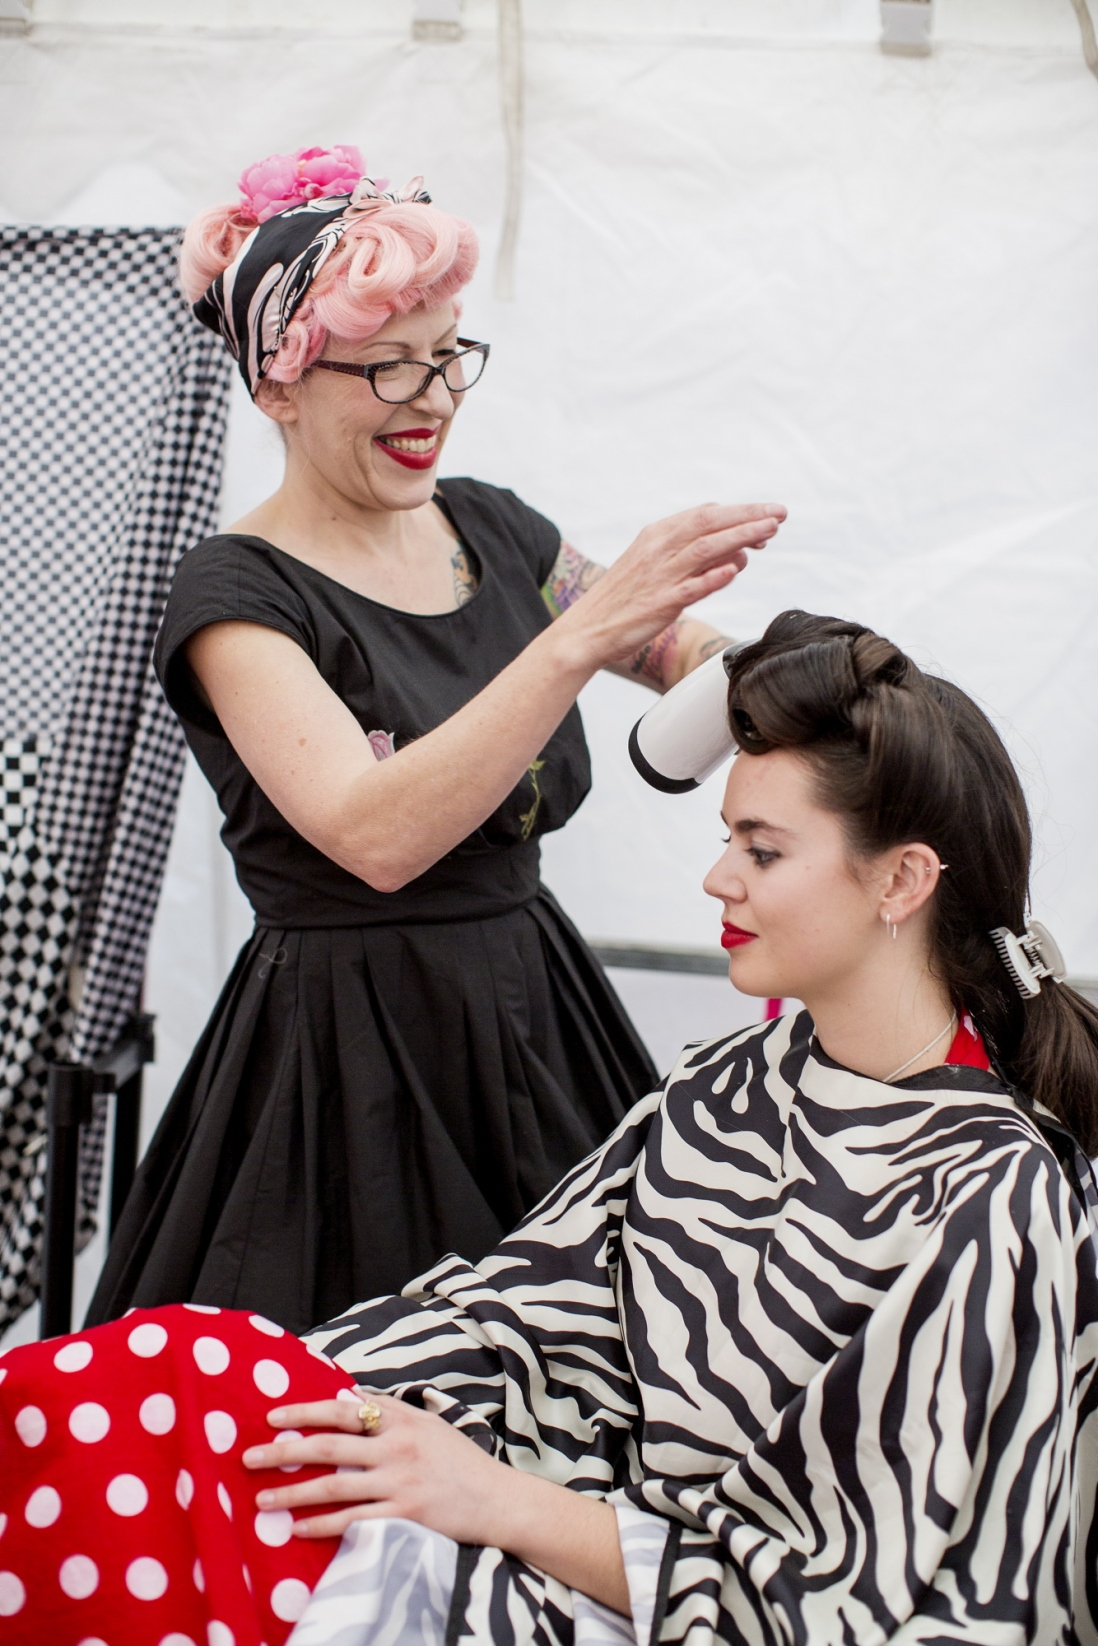 Photo of woman cutting another woman's hair